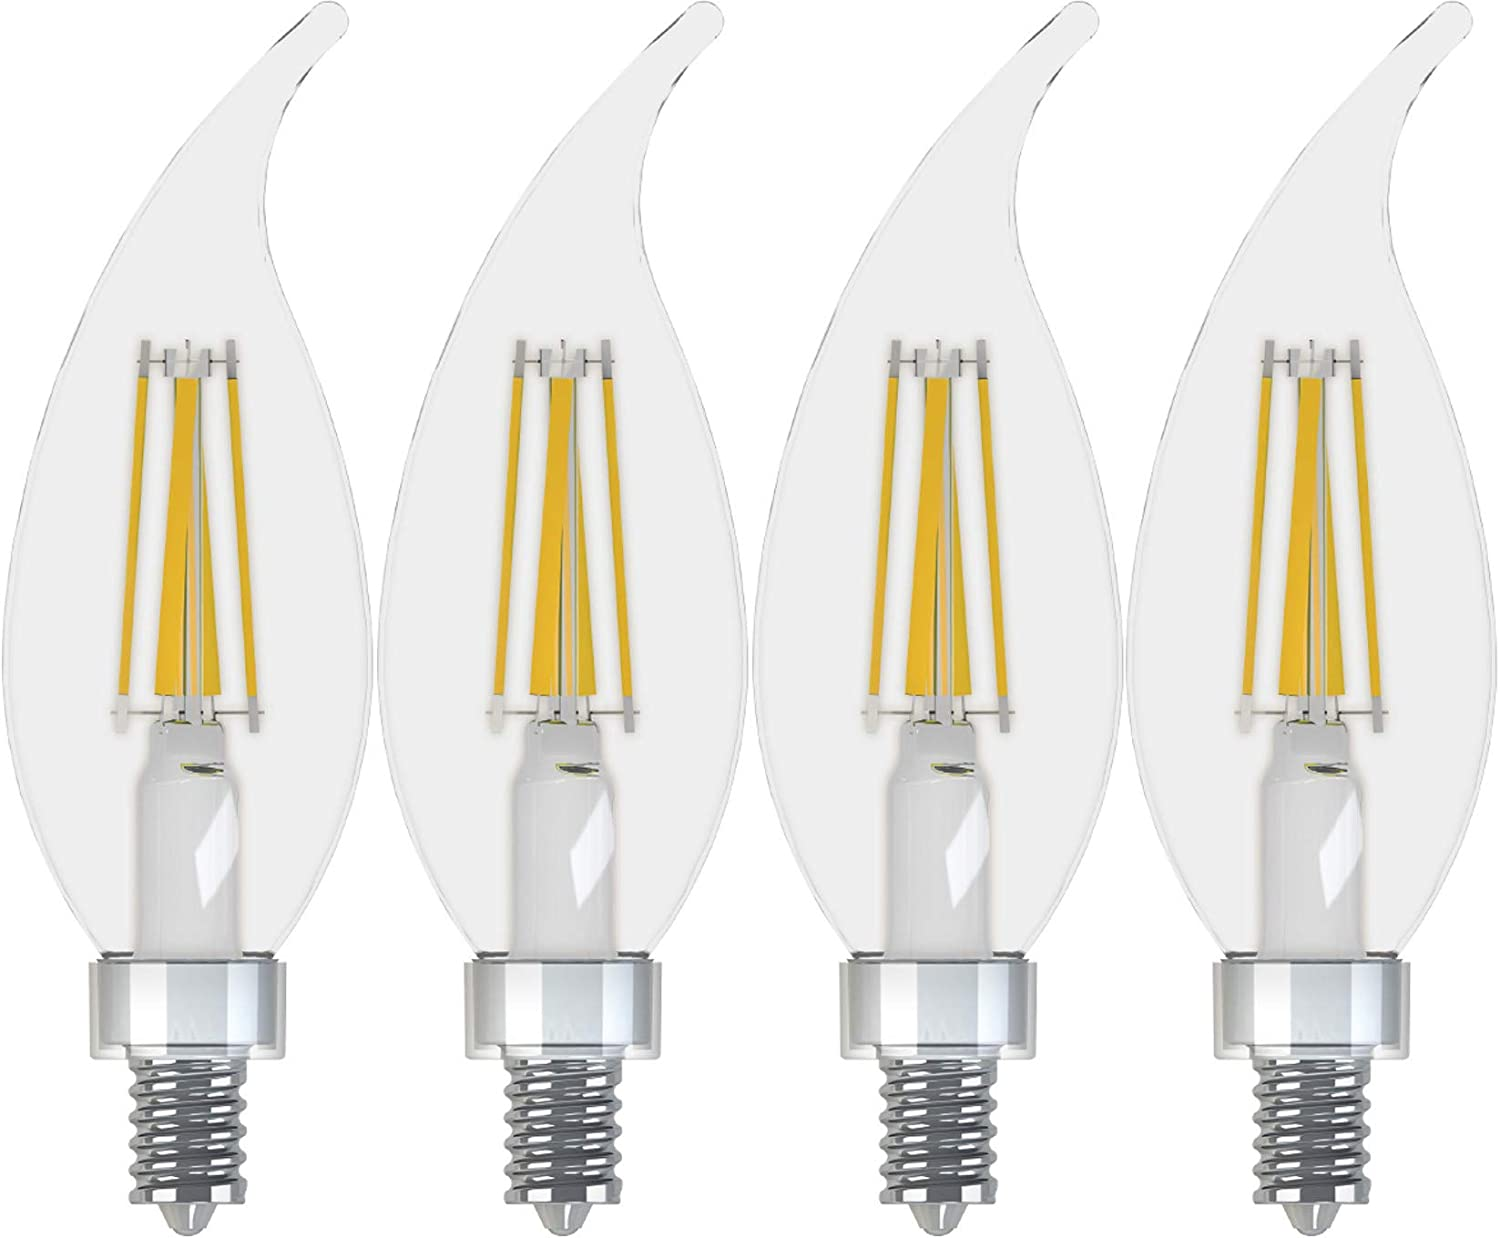 GE Lighting 43245 Refresh HD LED (60-Watt Replacement), 500-Lumen Candle Bulb, Candelabra Base, Daylight Clear, 4-Pack, Title 20 Compliant